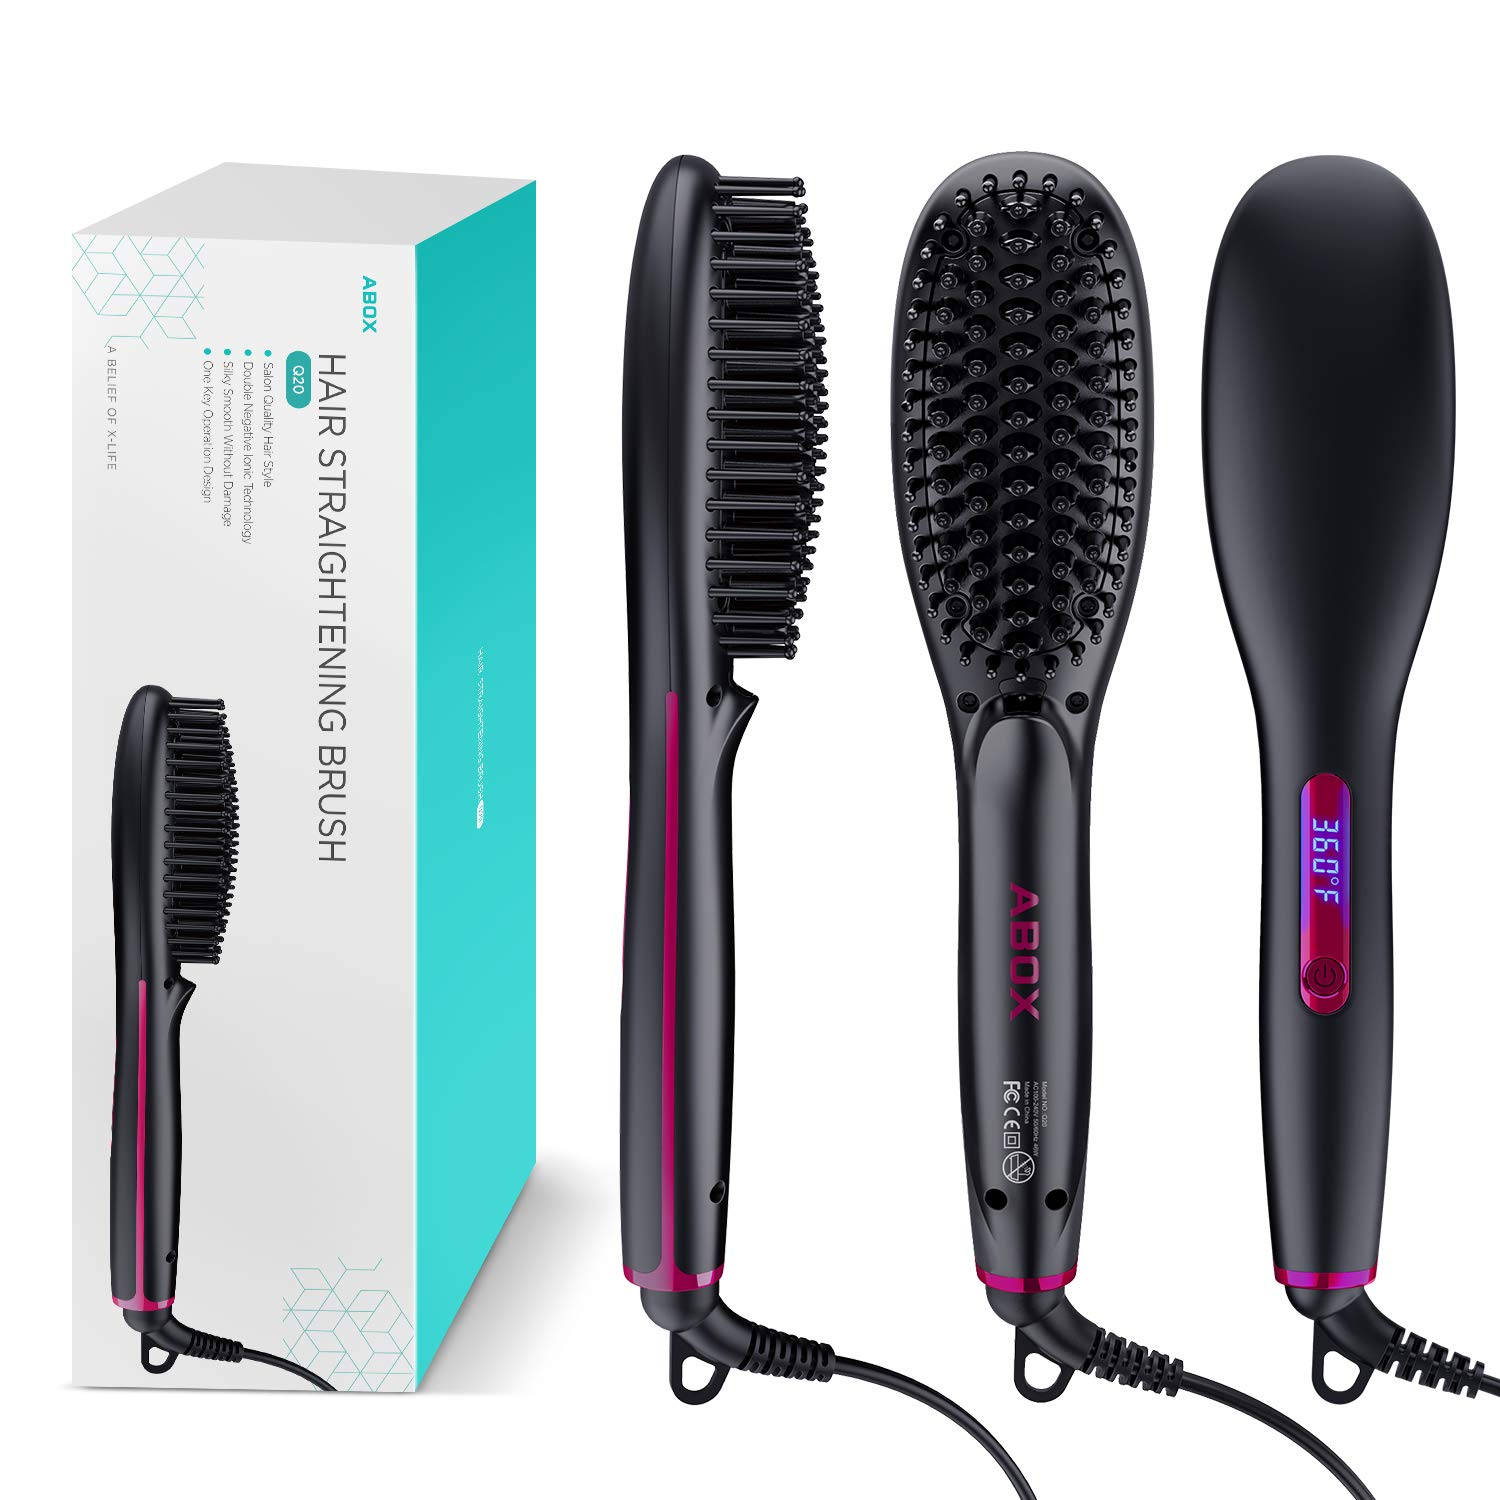 Hair Straightener Brush, ABOX Electric Ionic Hair Straightening Comb, 30s Fast Ceramic Heating with Anti-Scald, 8 Levels Adjustable Temperature with LED Display, Auto-Lock and Auto-Off, 100-240V